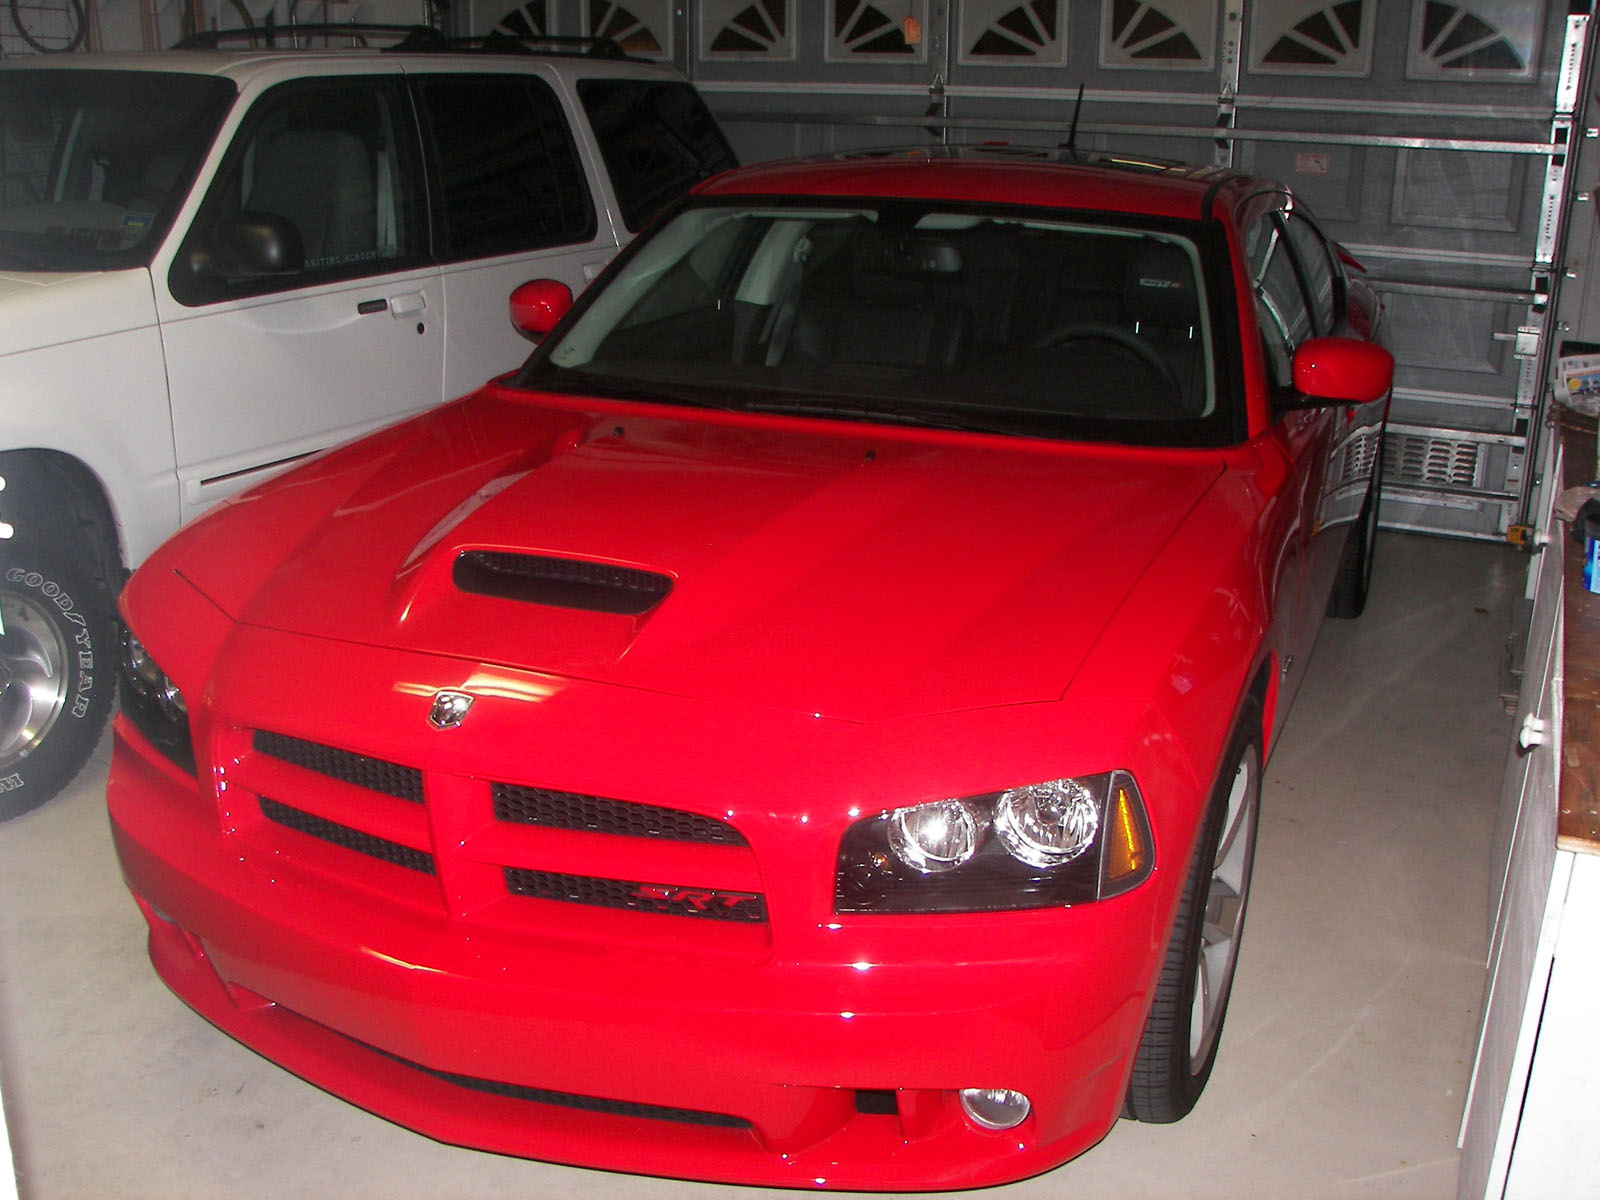 2008 dodge charger srt8 pictures mods upgrades. Black Bedroom Furniture Sets. Home Design Ideas